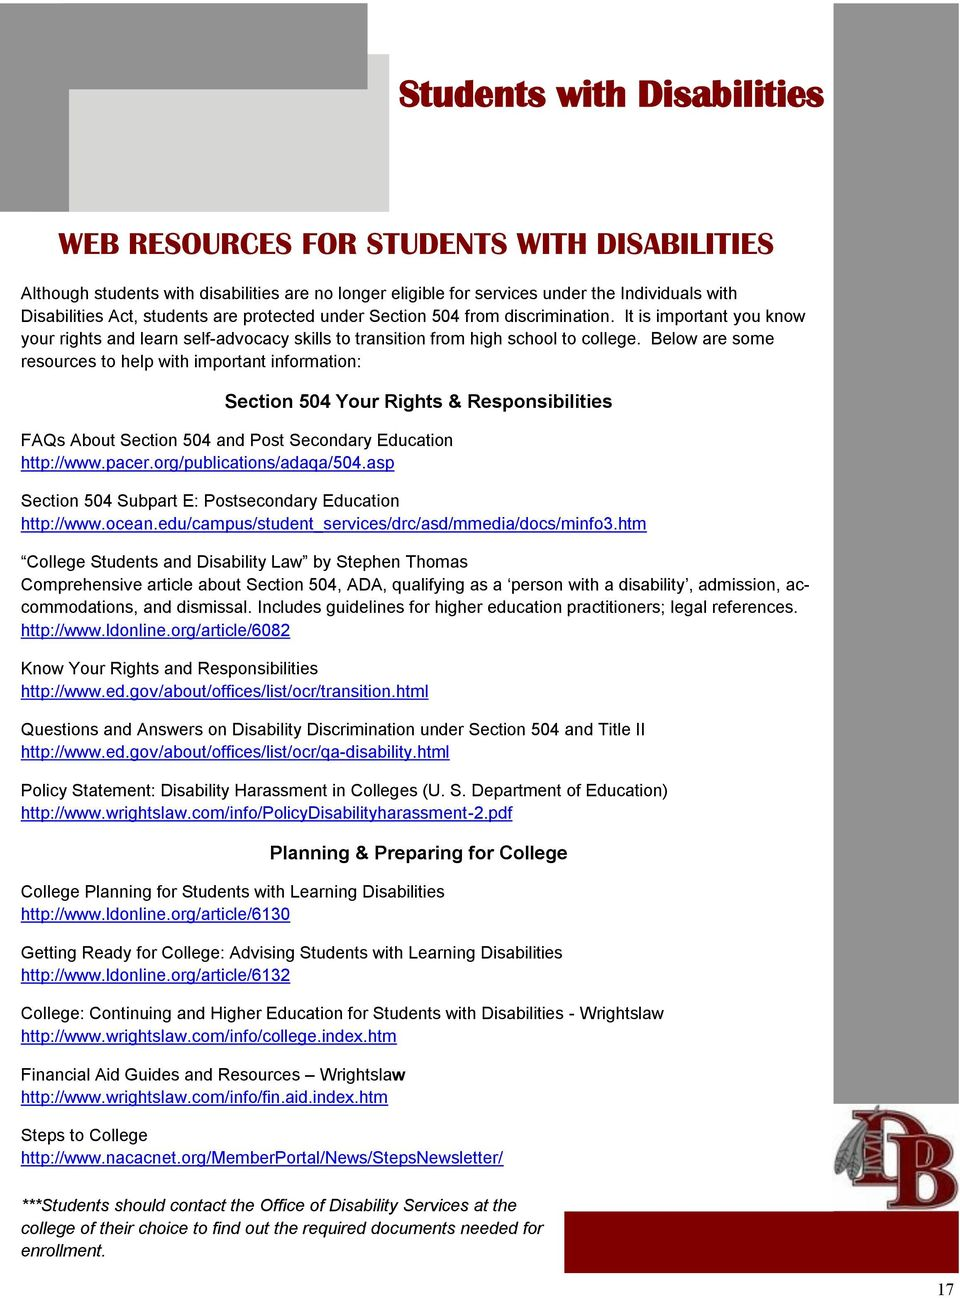 Below are some resources to help with important information: Section 504 Your Rights & Responsibilities FAQs About Section 504 and Post Secondary Education http://www.pacer.org/publications/adaqa/504.